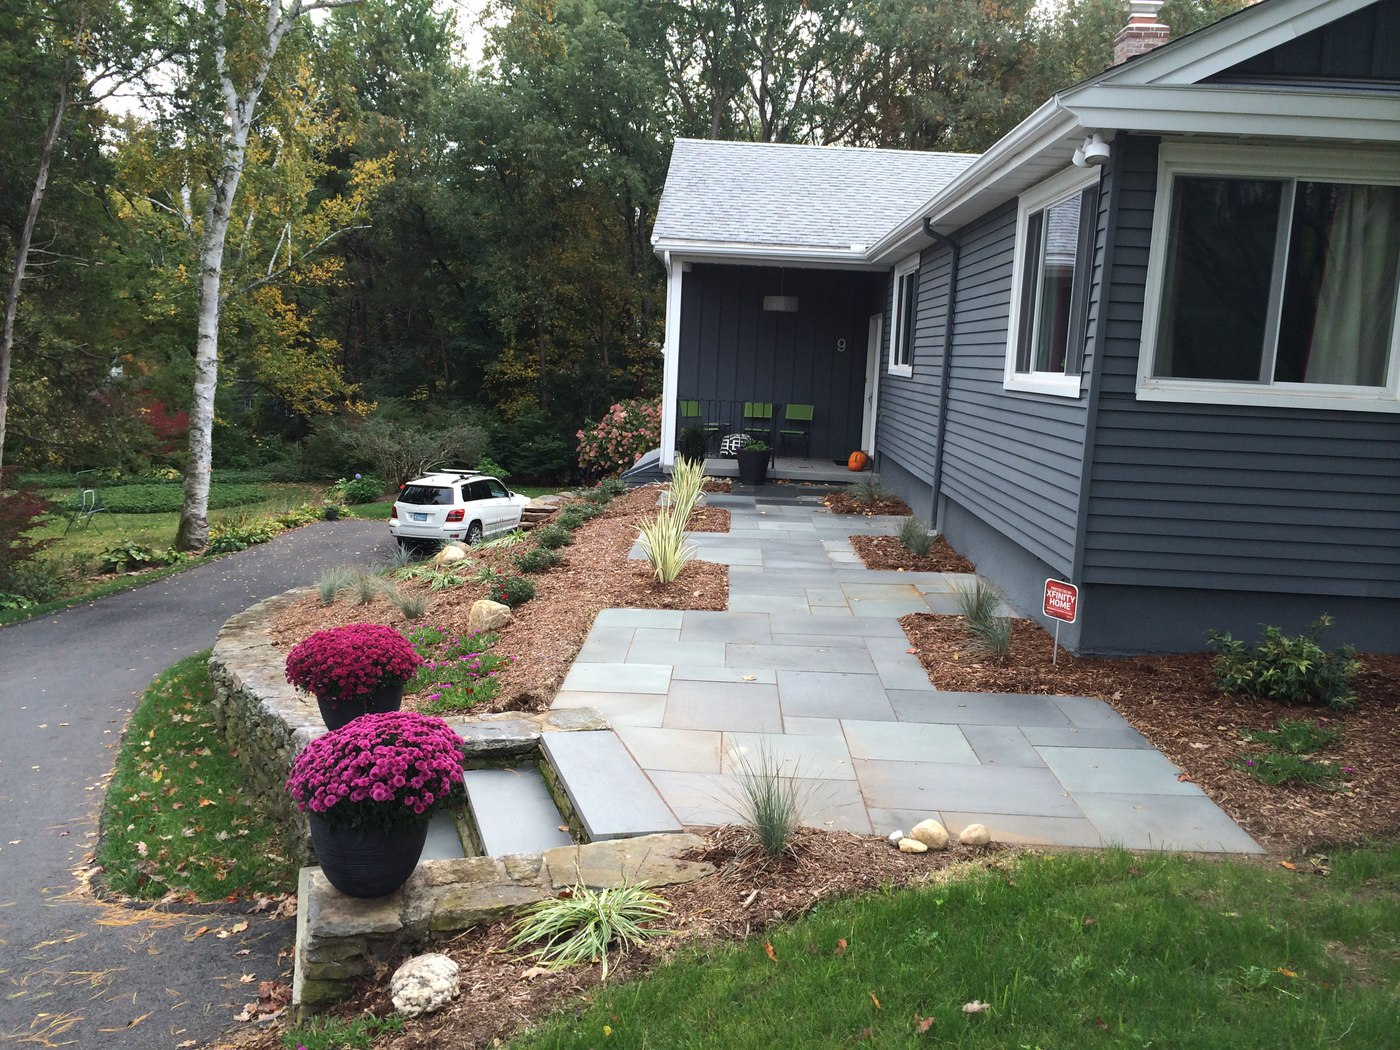 Blue stone walkway and landscaping by Bahler Brothers in West Hartford, CT